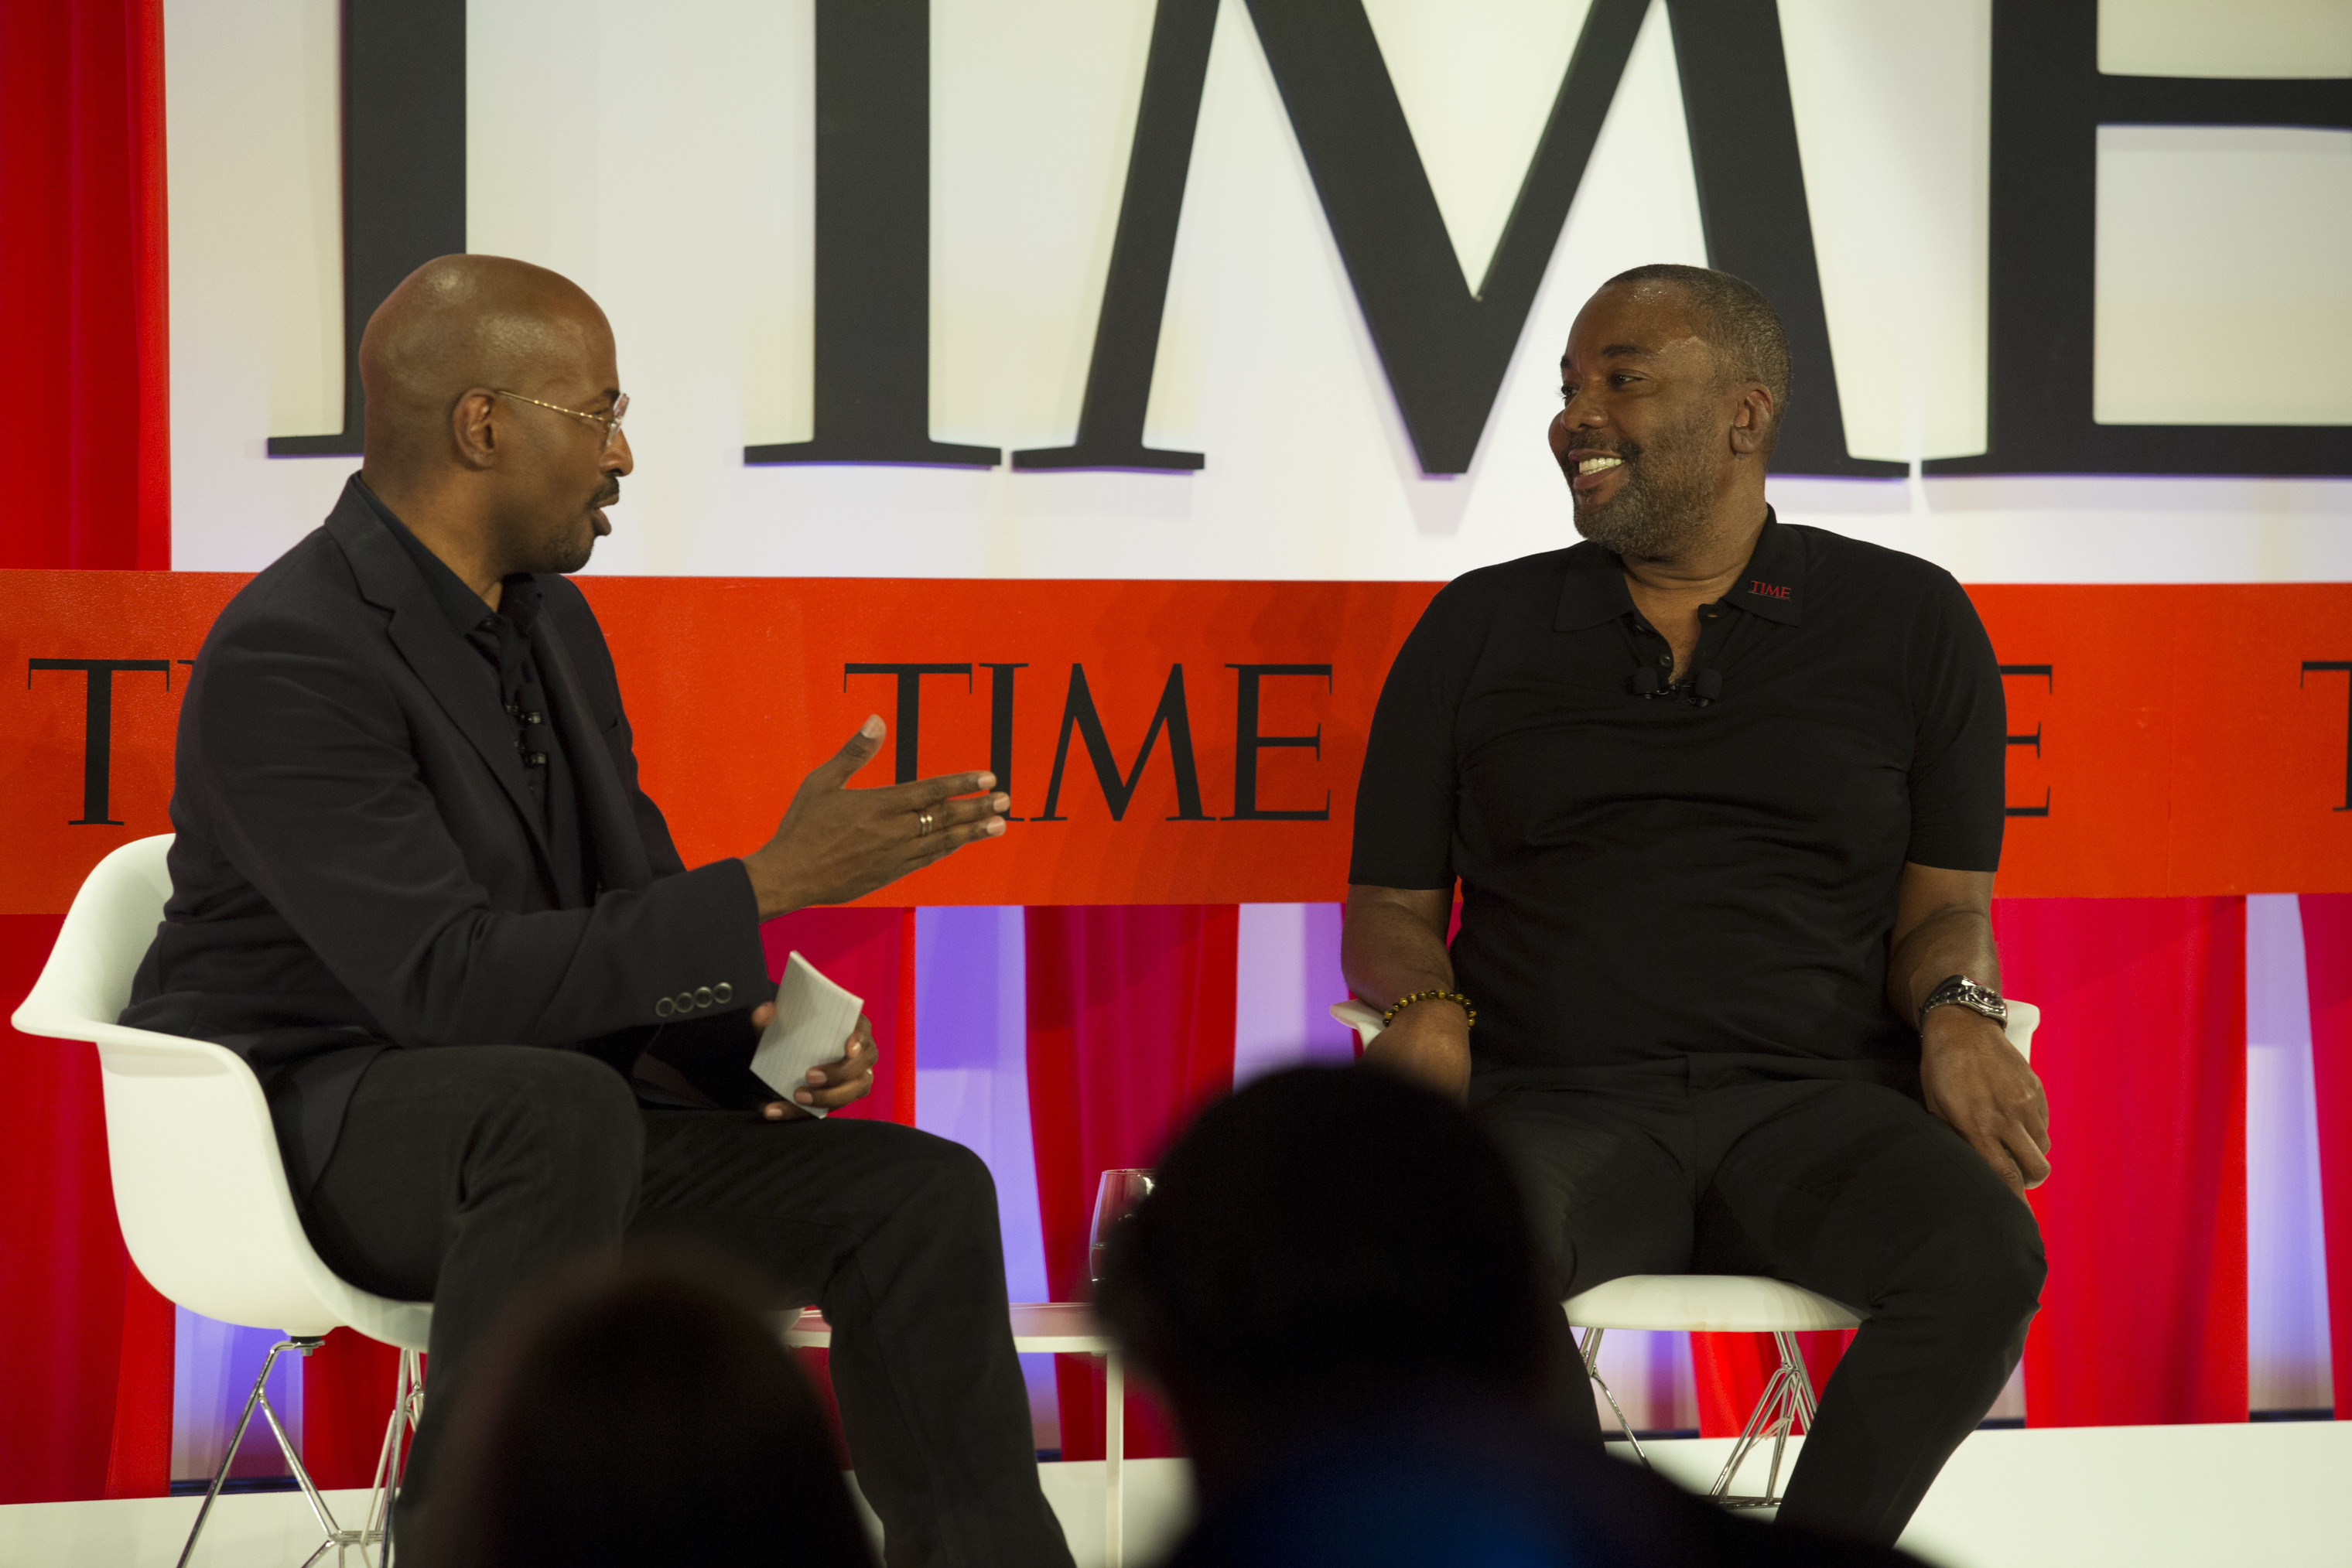 Writer, producer and director Lee Daniels talks to CNN political commentator Van Jones about leading by disruption at the TIME 100 Summit  in New York on April 23, 2019.